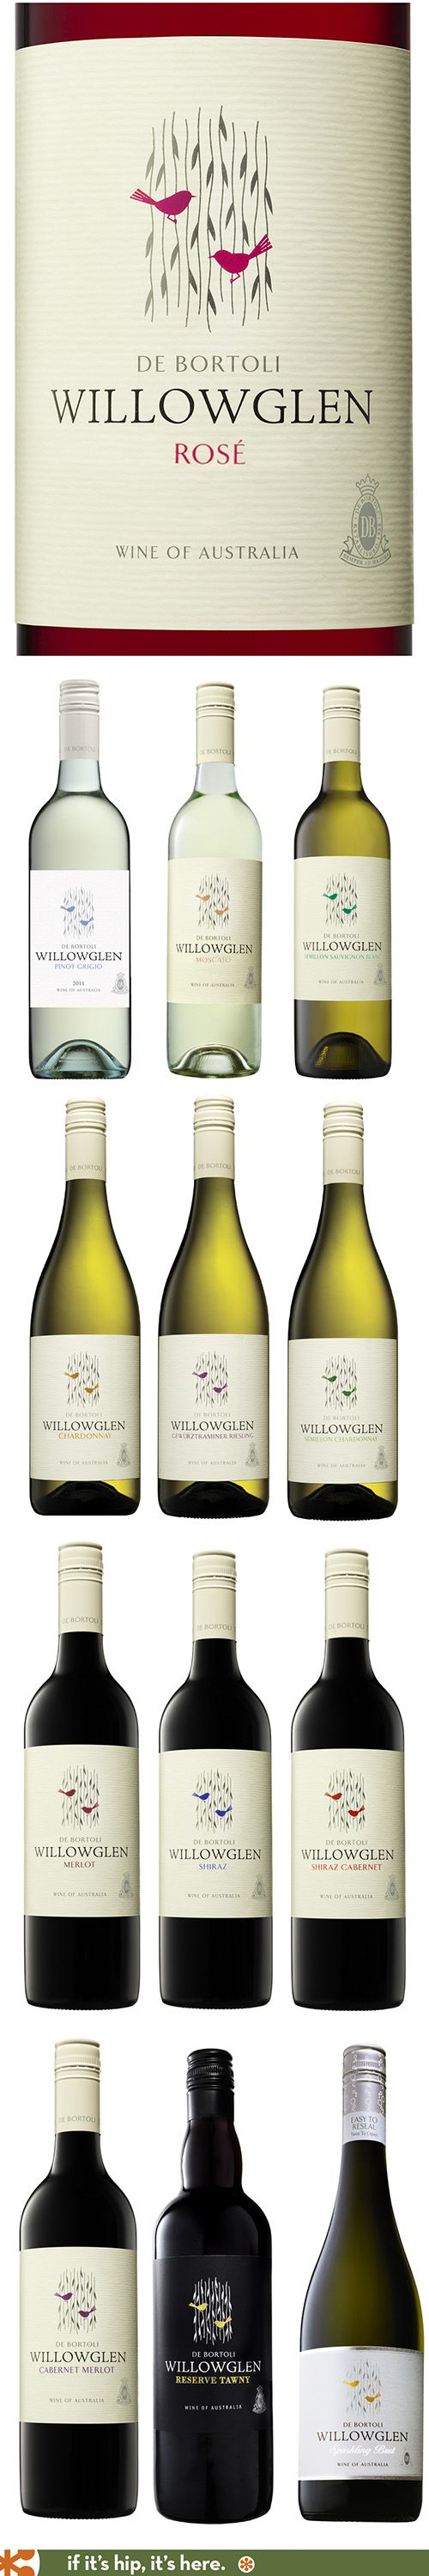 Willowglen's beautiful bird label changes colors for all their various wines.